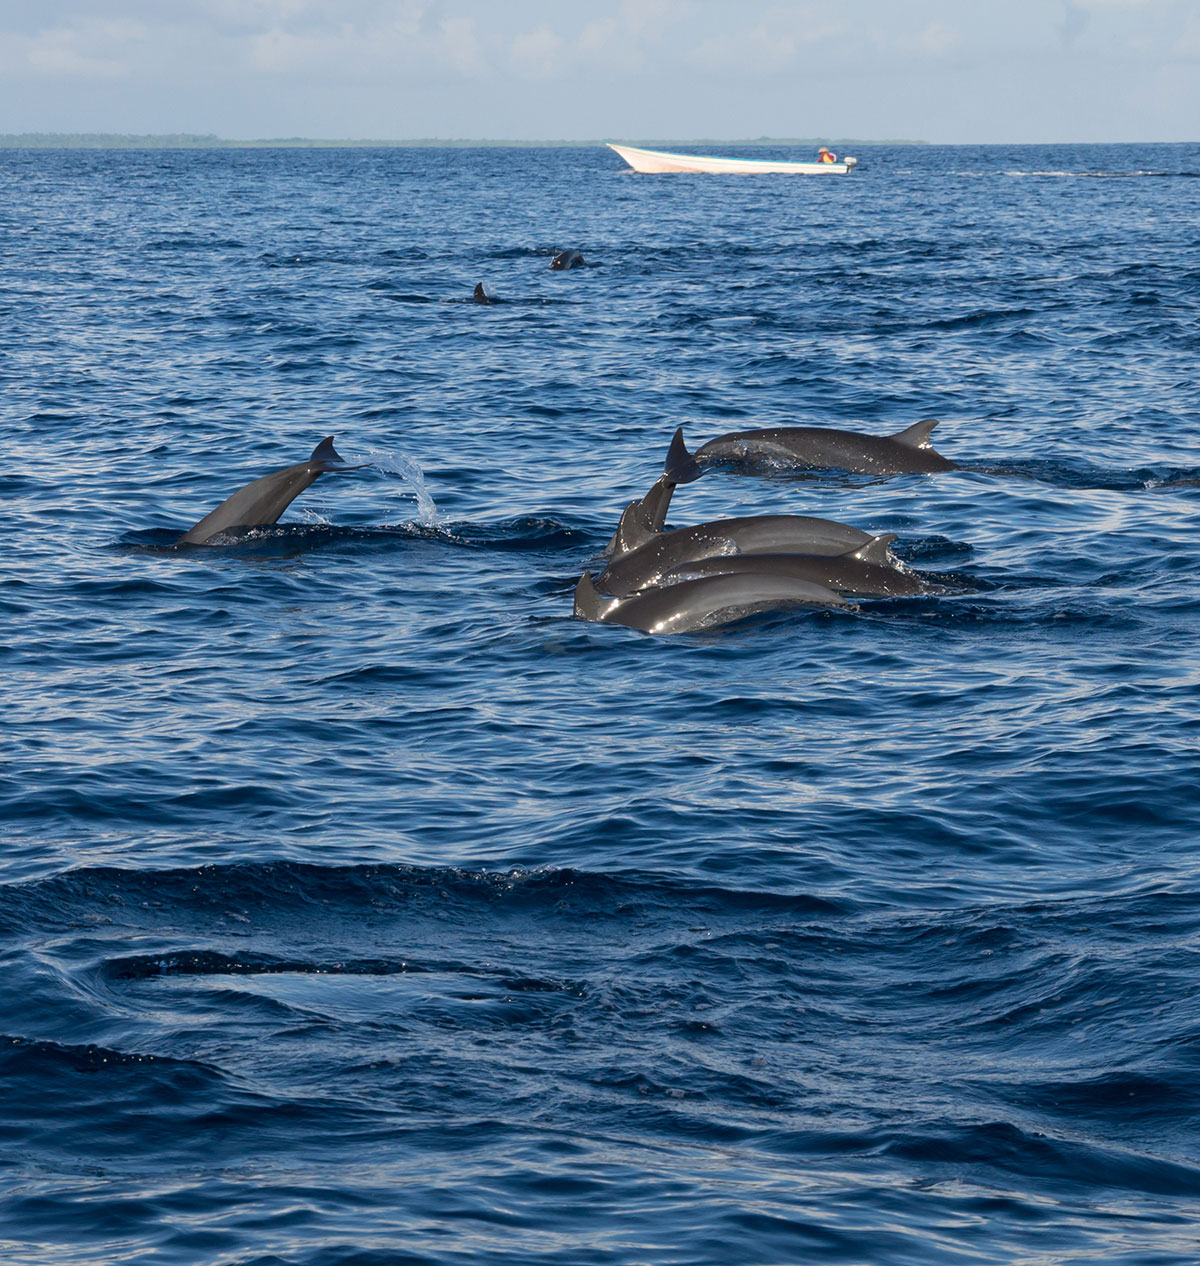 Indonesia, Manado, Bunaken Island, Dolphin watch Tour, Dolphin in front of Fisher Boat